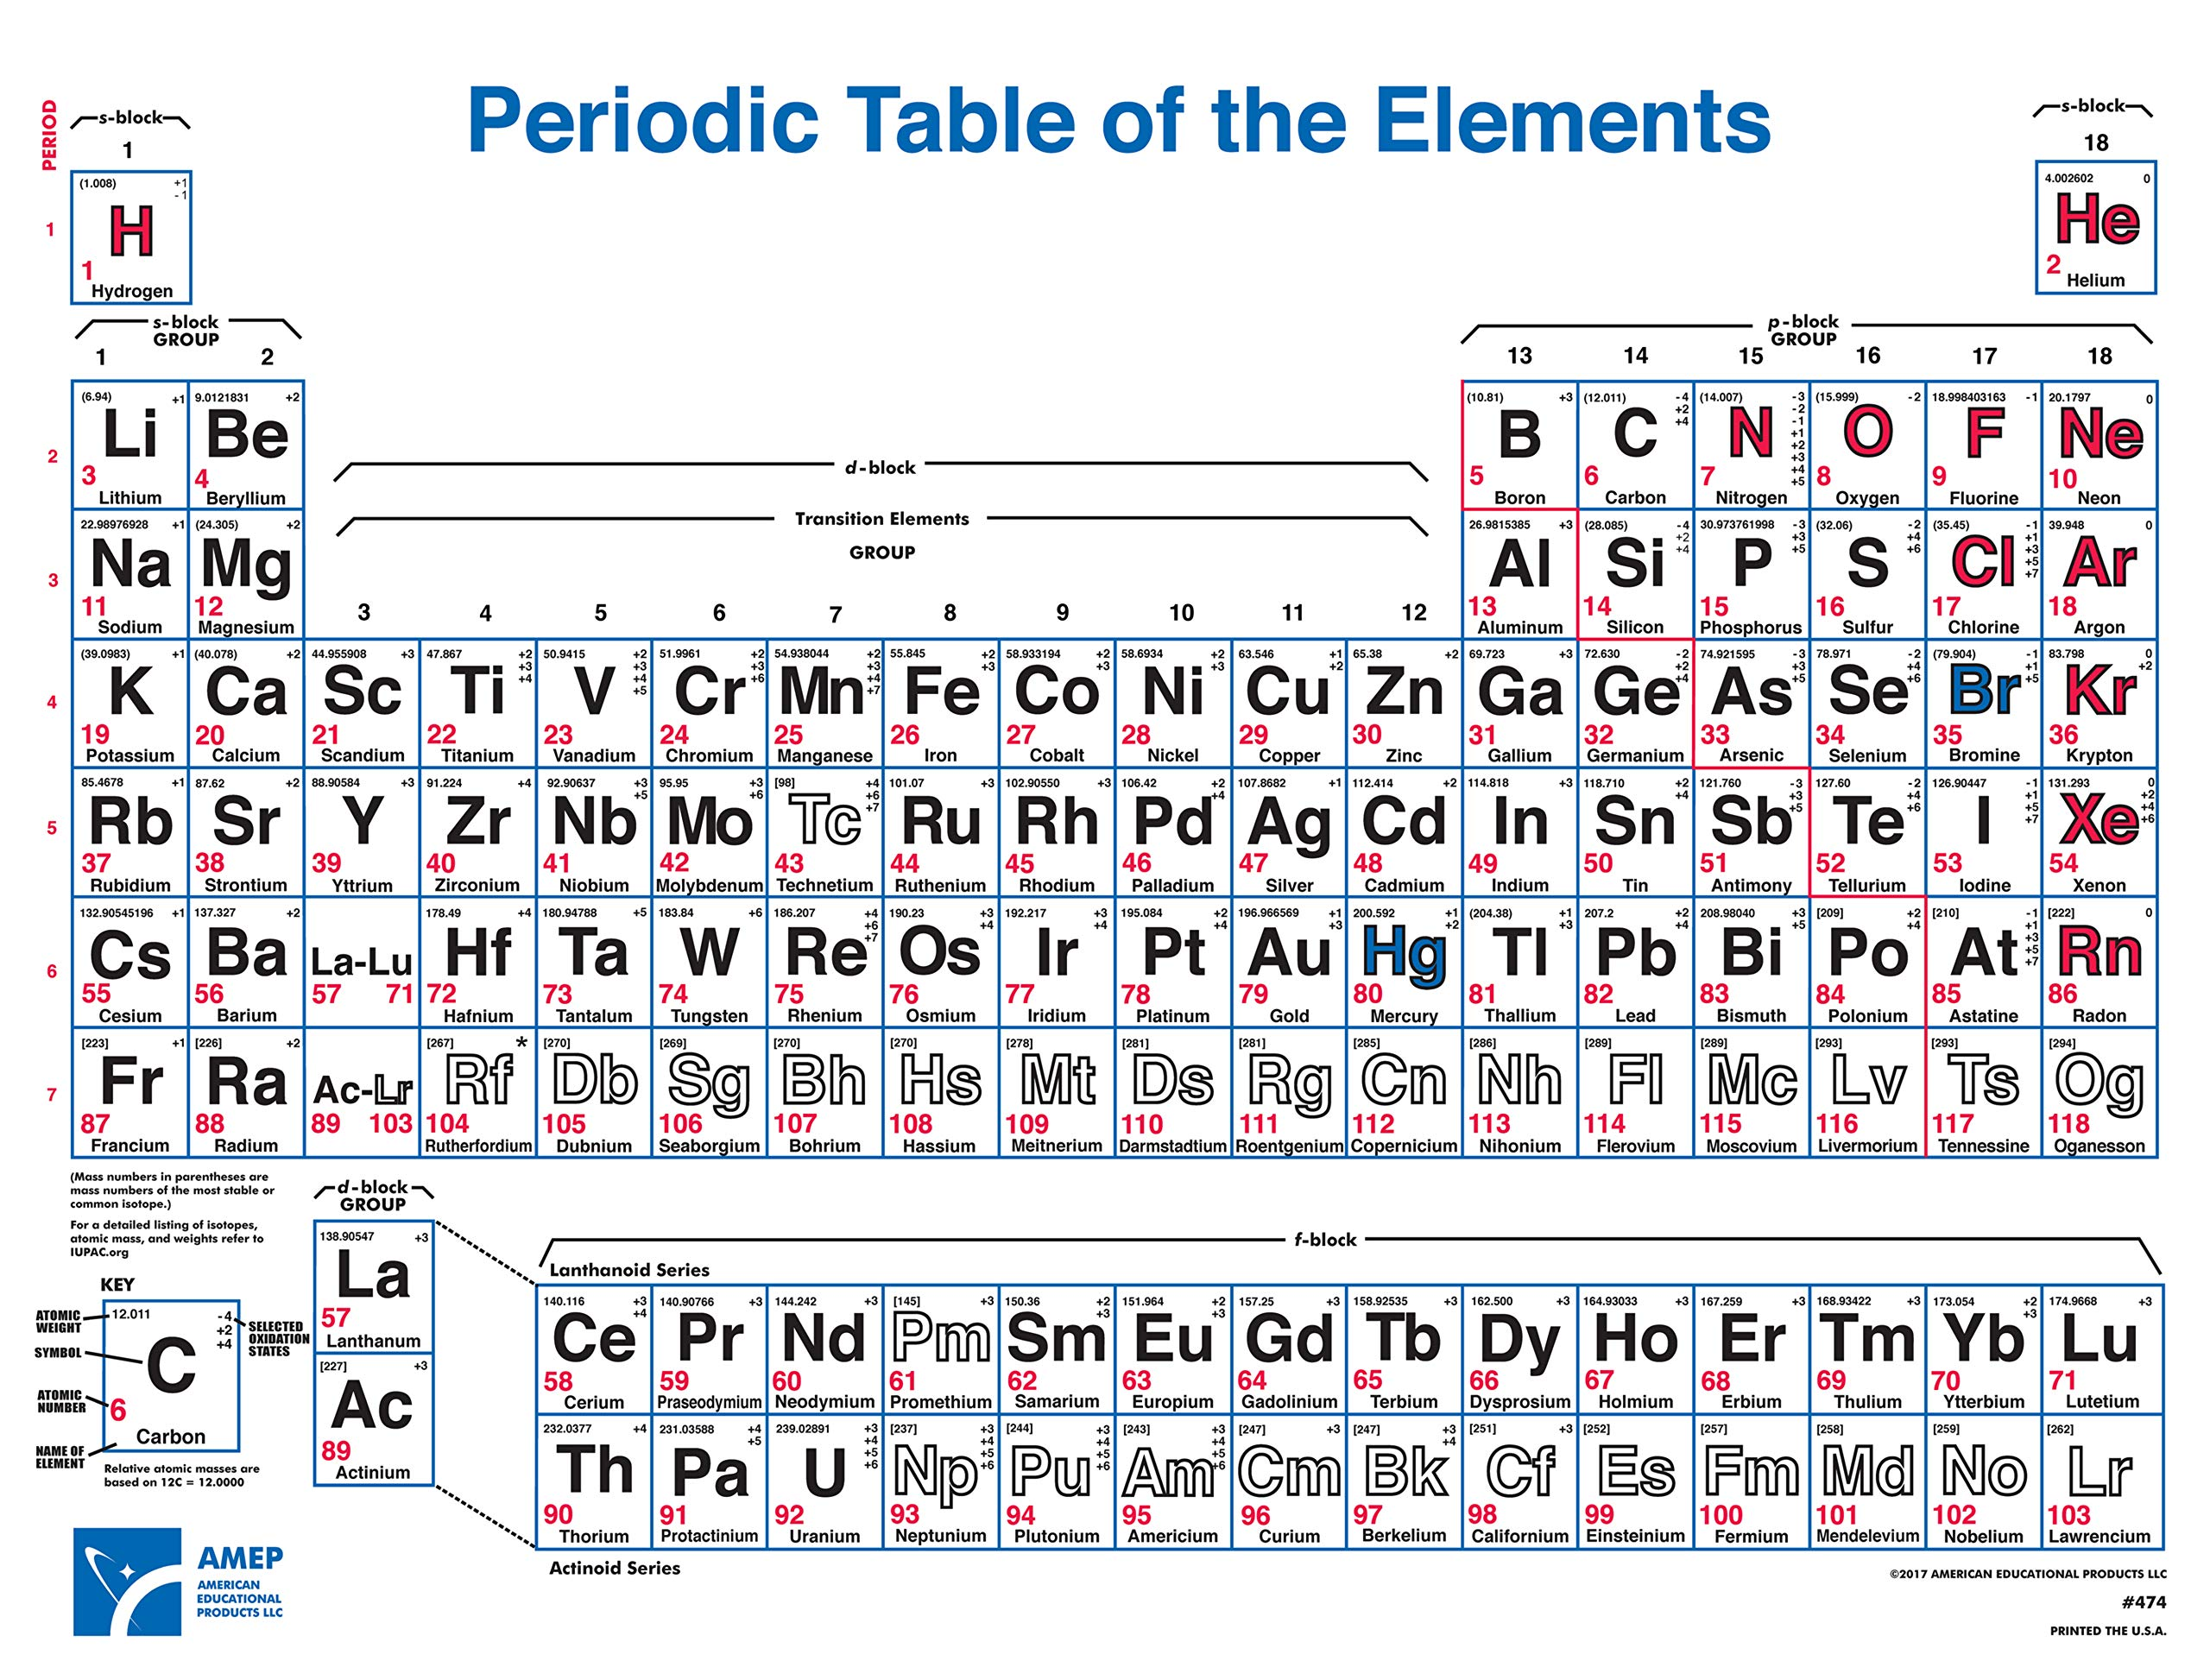 American Educational 4 Color Periodic Table Wall Chart 49-1/2'' Length x 38'' Width Now includes elements up to UUO118